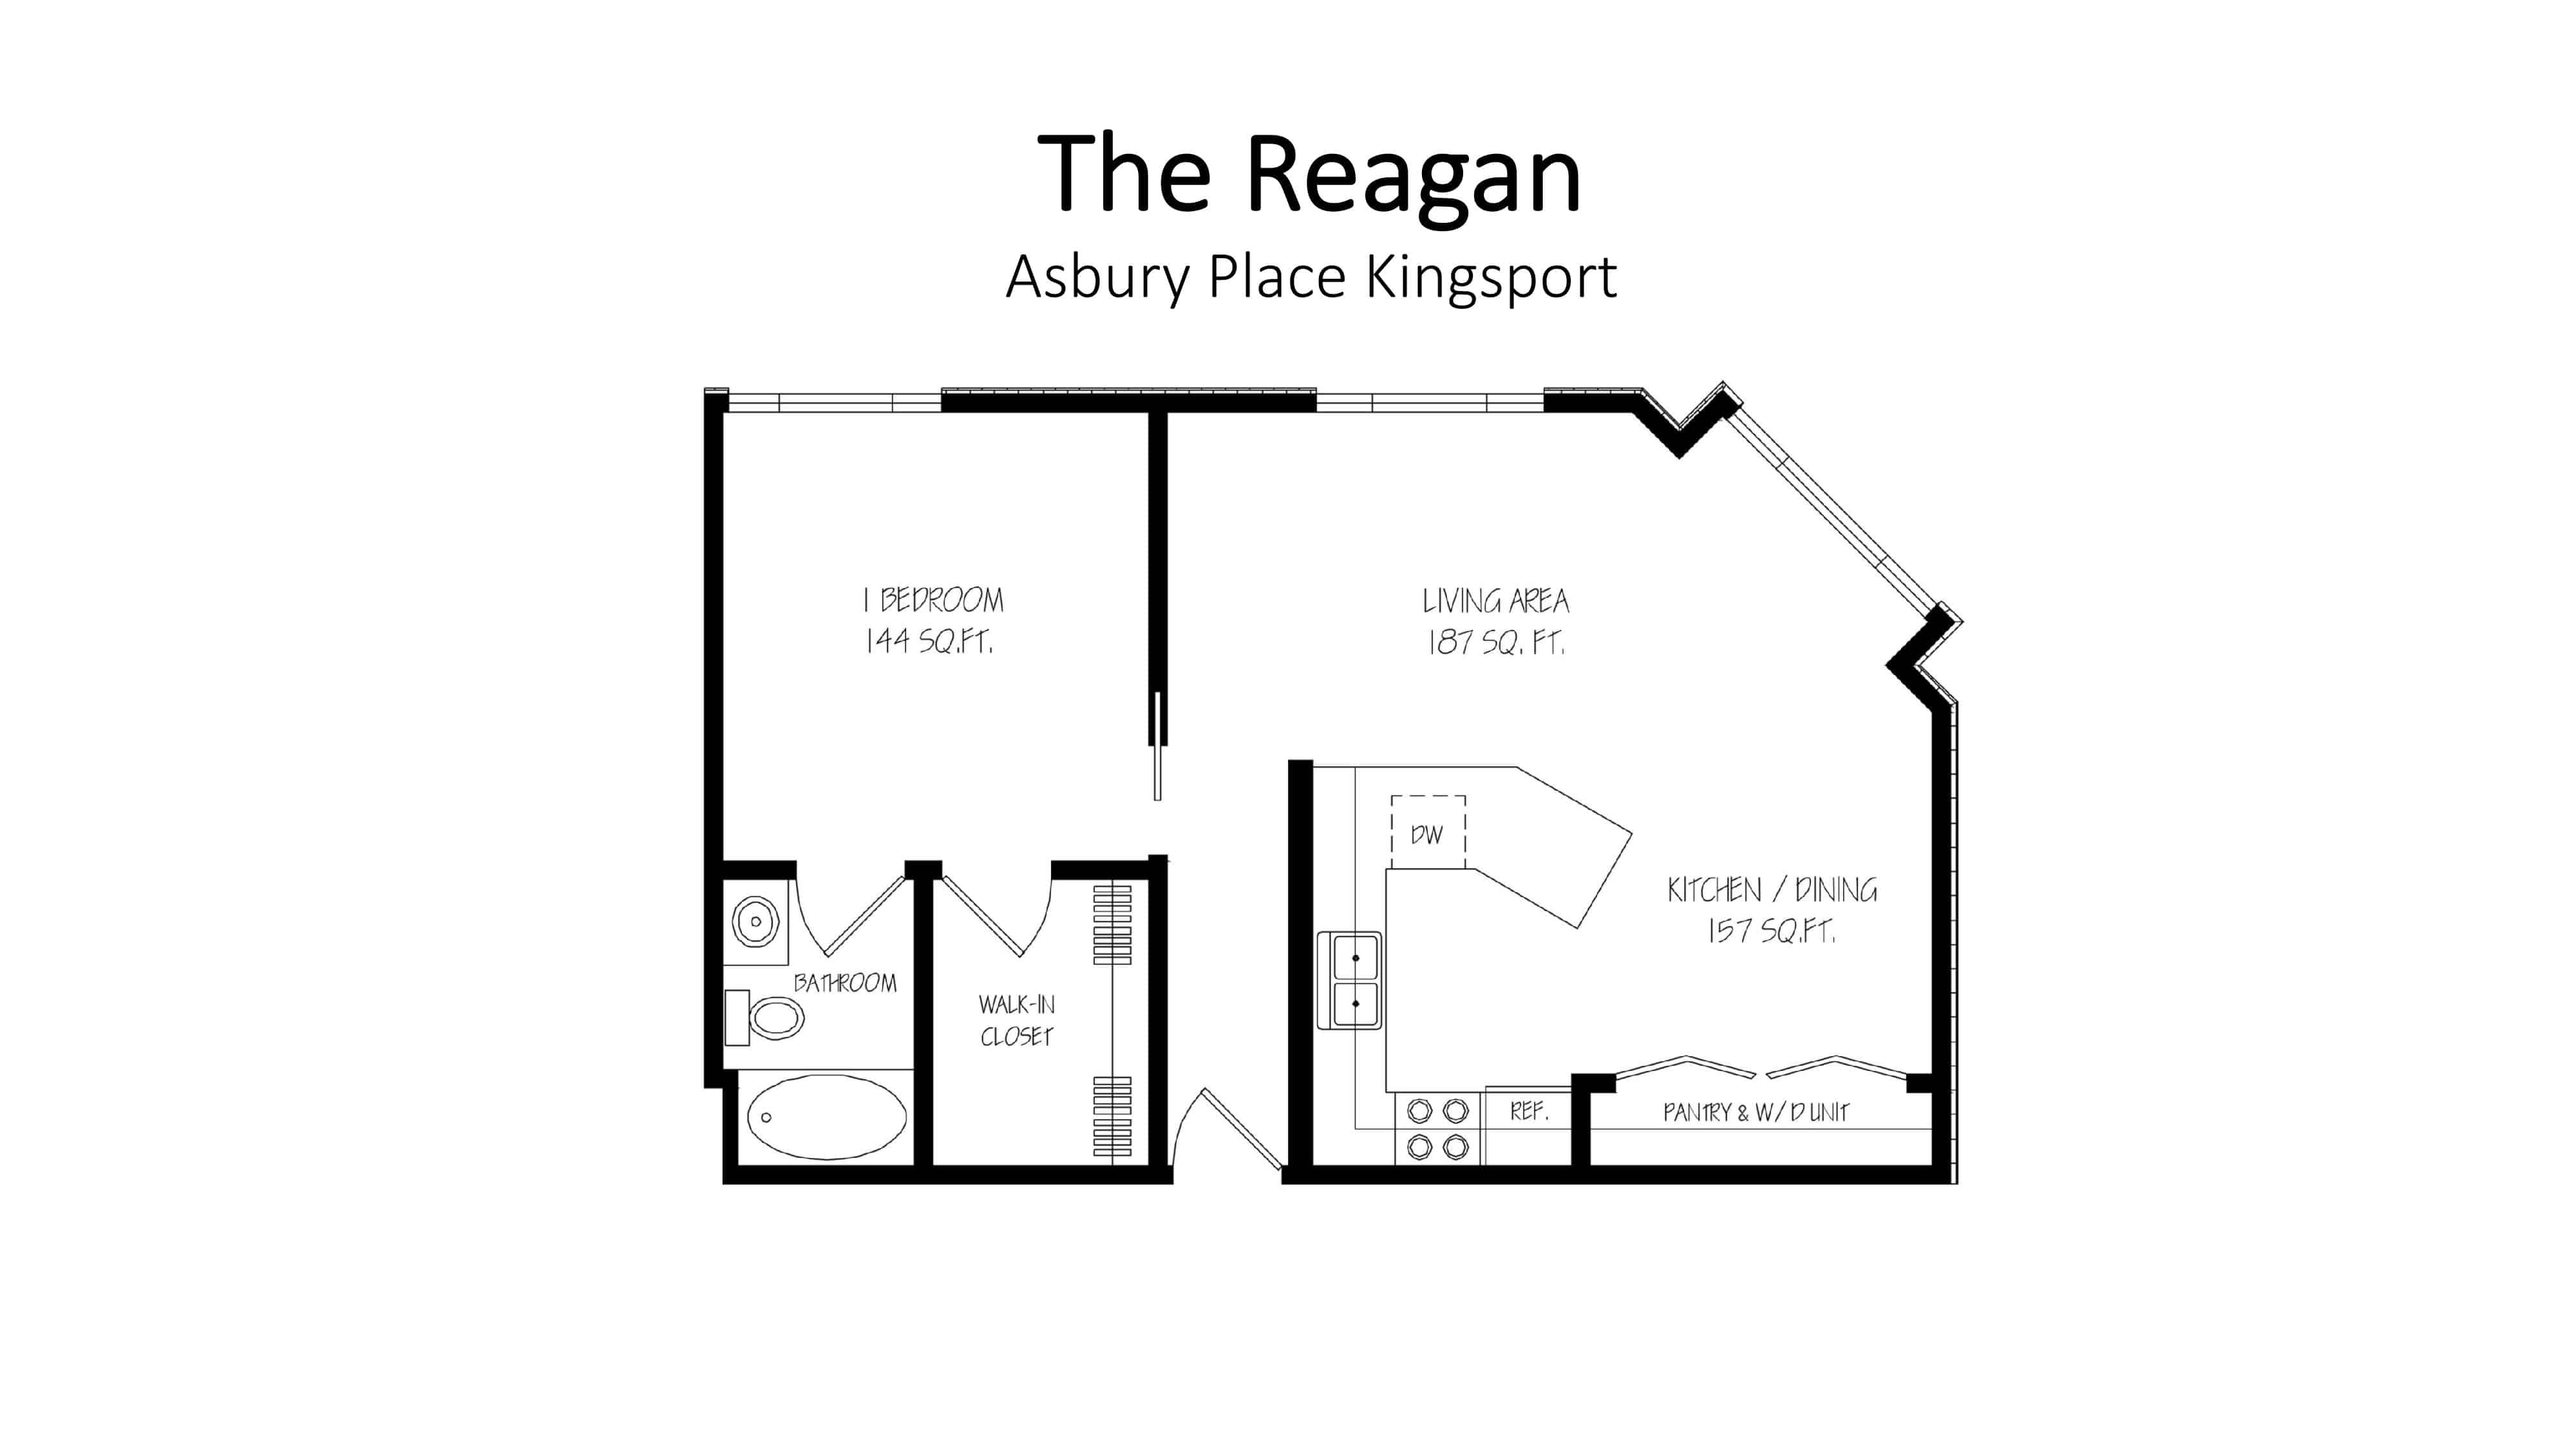 Asbury Place Kingsport The Reagan Floorplan